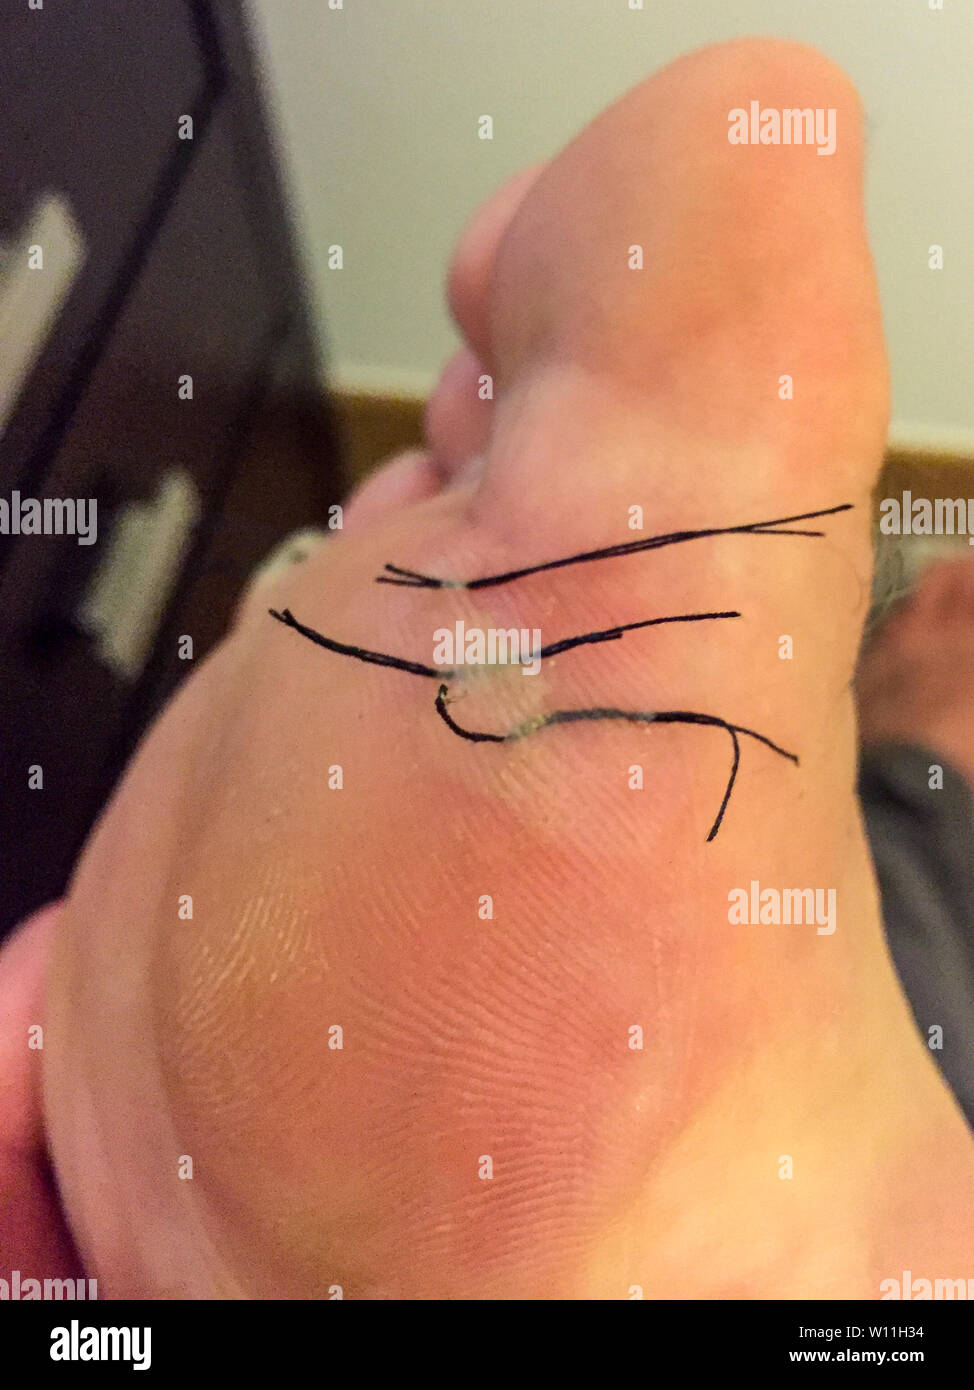 A close up of the underneath of a painful big toe with a blister due to lots of walking along the Camino de Santiago needling the blister to remove th - Stock Image